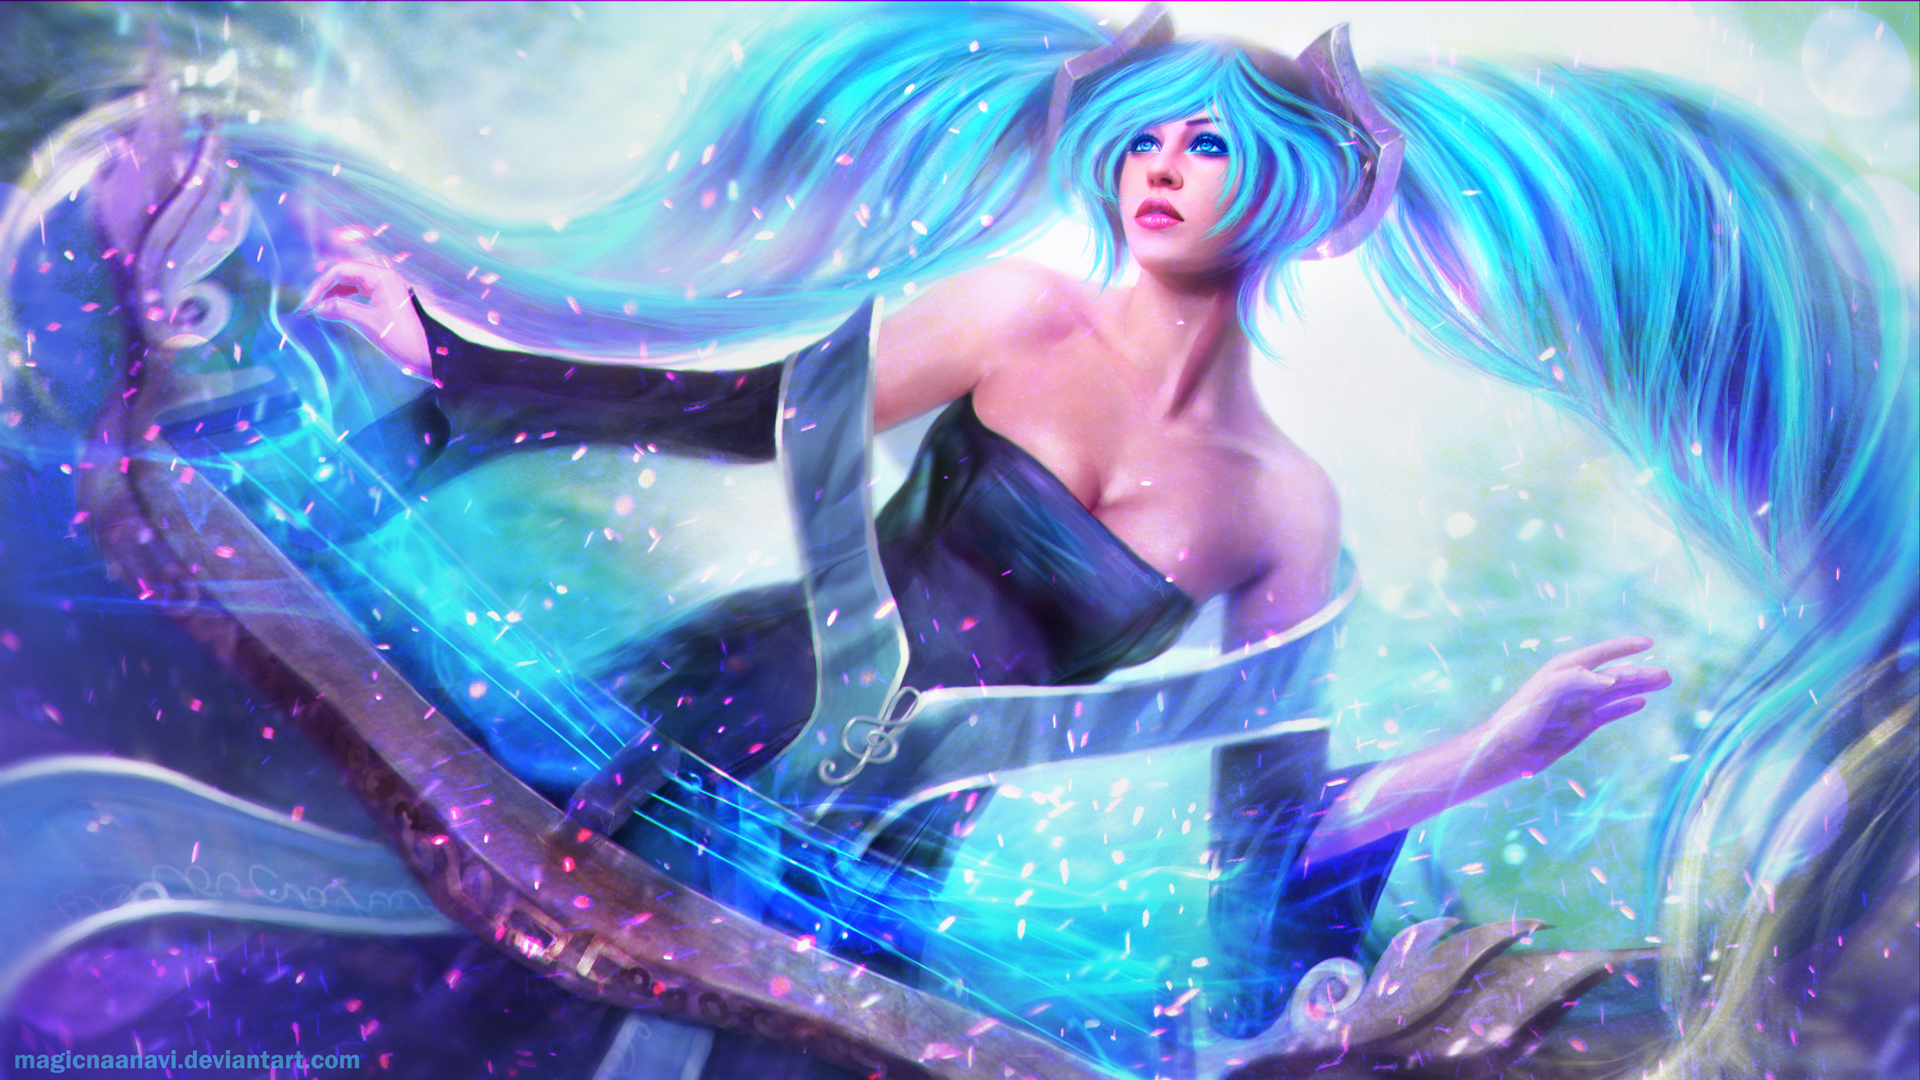 Sona League Of Legends Wallpaper HD 1920x1080